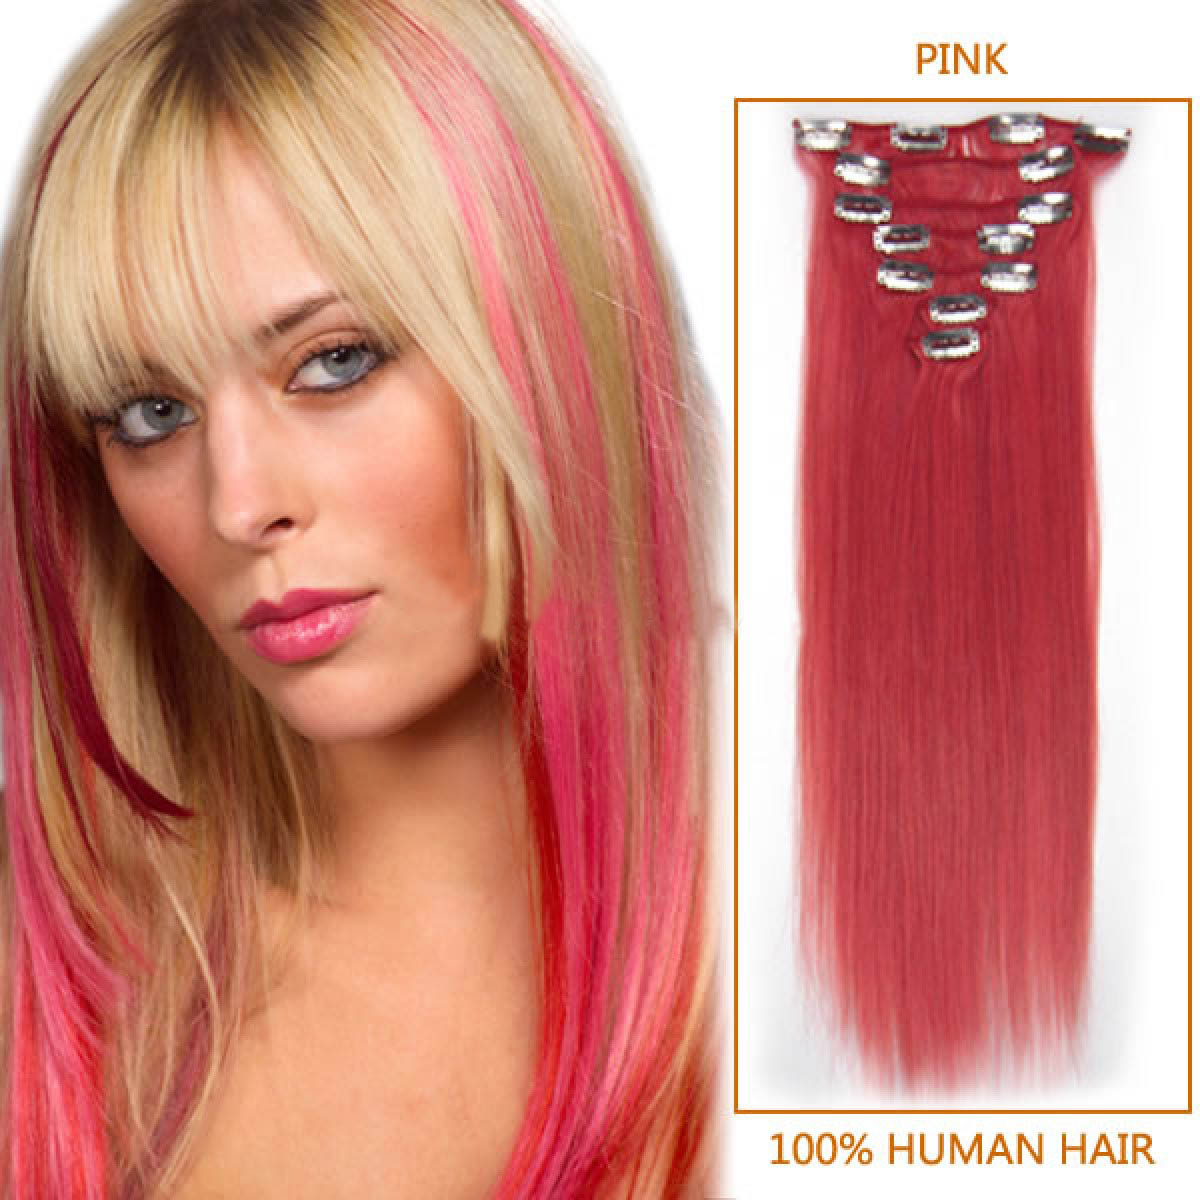 Inch pink clip in remy human hair extensions 7pcs 22 inch pink clip in remy human hair extensions 7pcs pmusecretfo Image collections